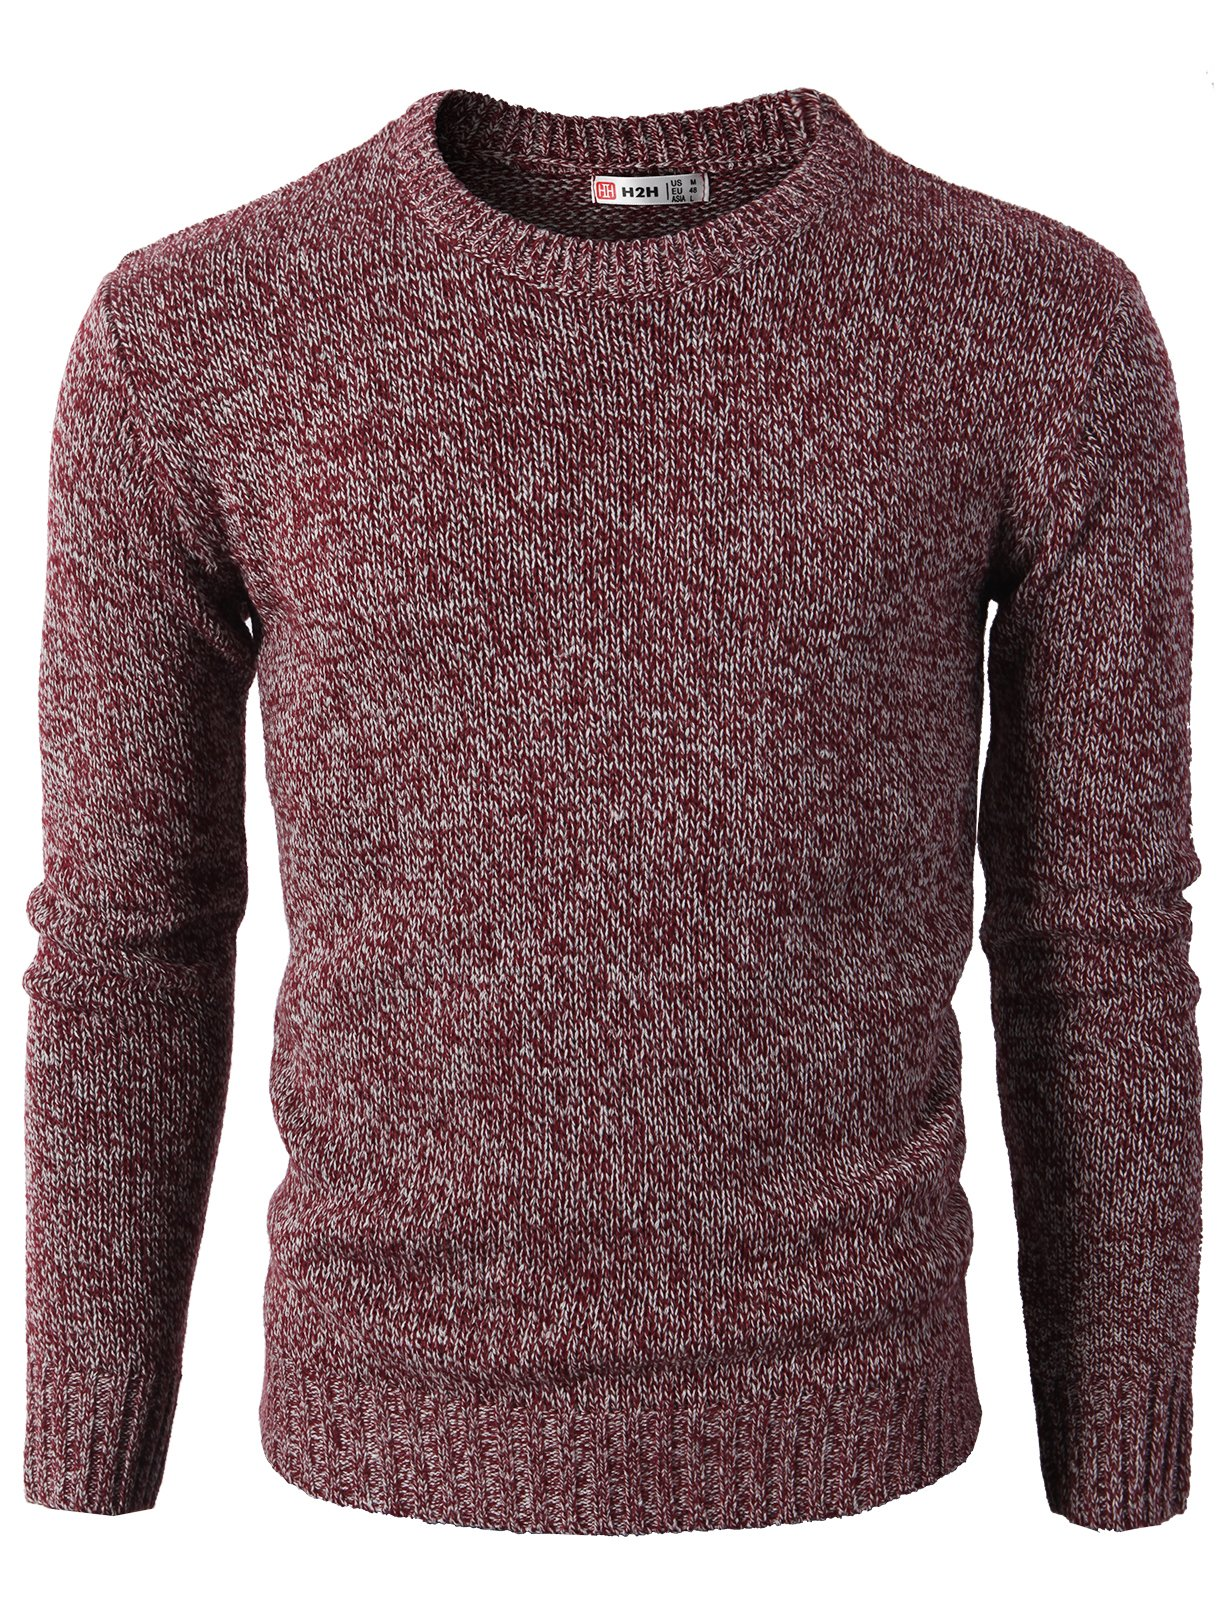 H2H Mens Slim Fit Basic Ribbed Thermal Turtleneck Pullover Sweaters Maroon US M/Asia L (KMOSWL0122) by H2H (Image #2)